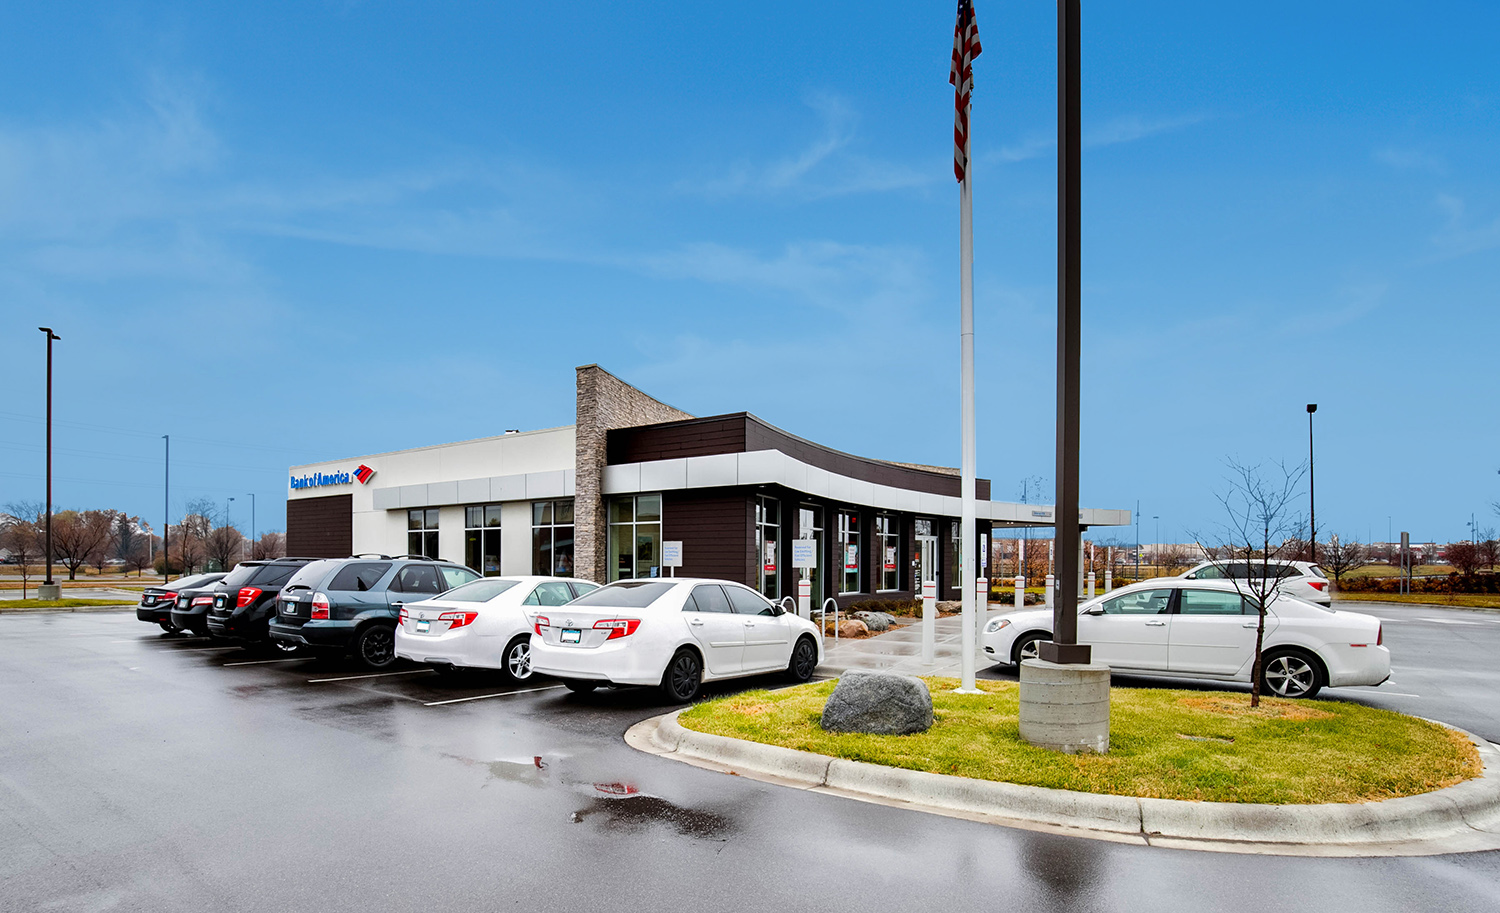 Hanley Investment Group Arranges Sale of New Construction Bank of America in Minneapolis Metro for $2.7 Million